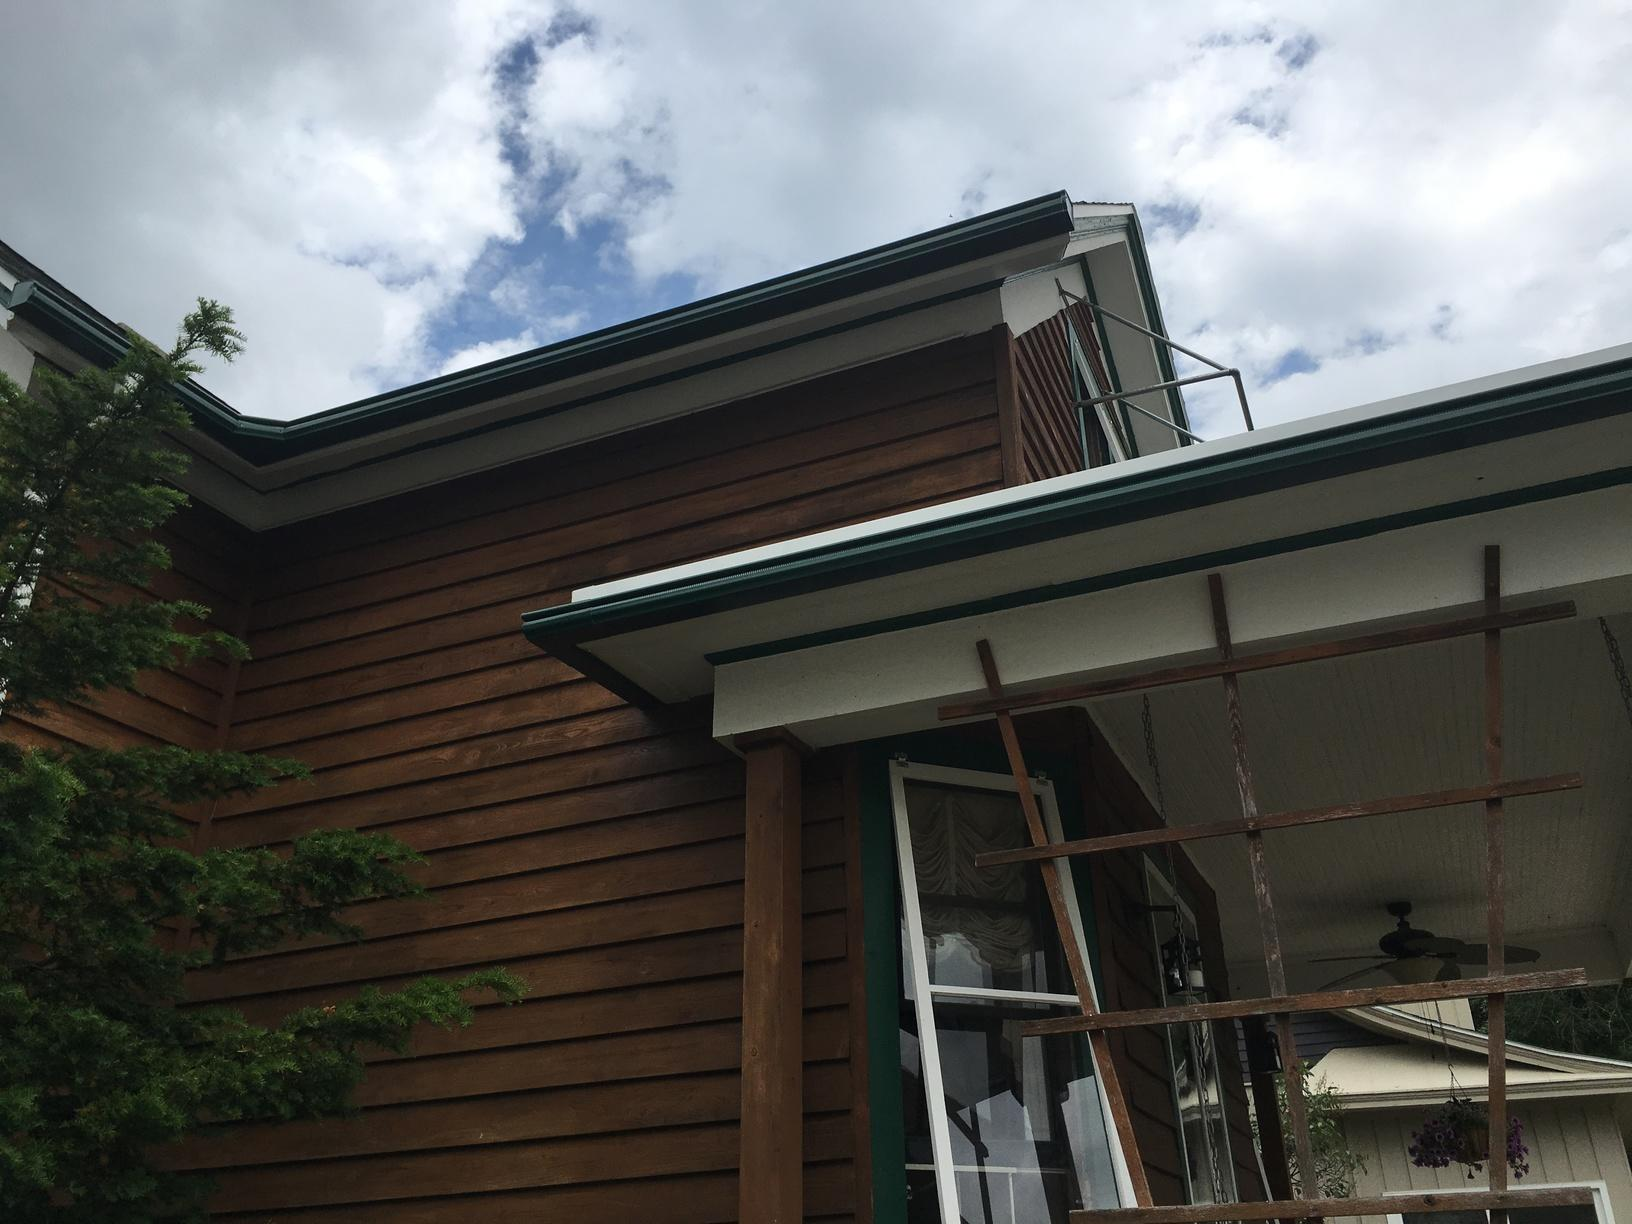 Dark Green LeafGuard Gutters Installed on a Home in Sheboygan, WI - After Photo